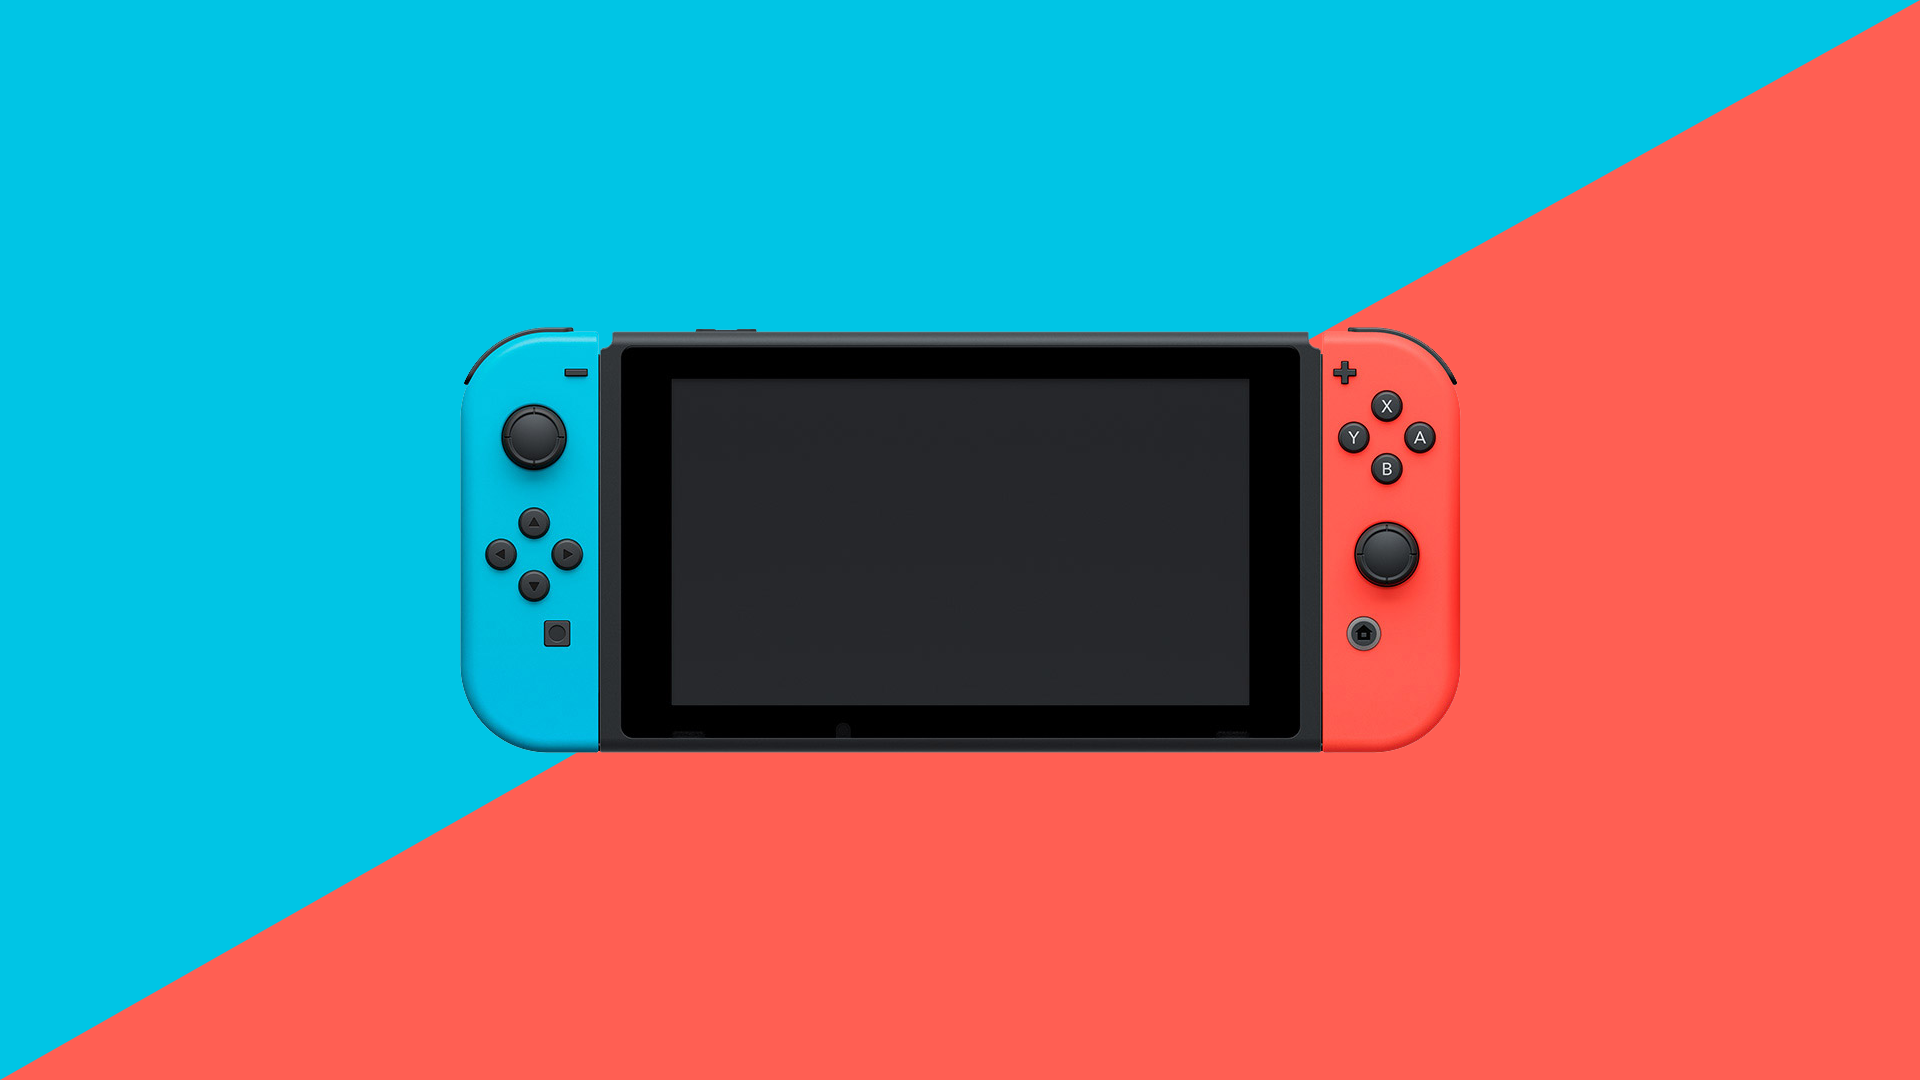 Some Selfmade Nintendo Switch Backgrounds For Computer HD Wallpapers Download Free Images Wallpaper [1000image.com]